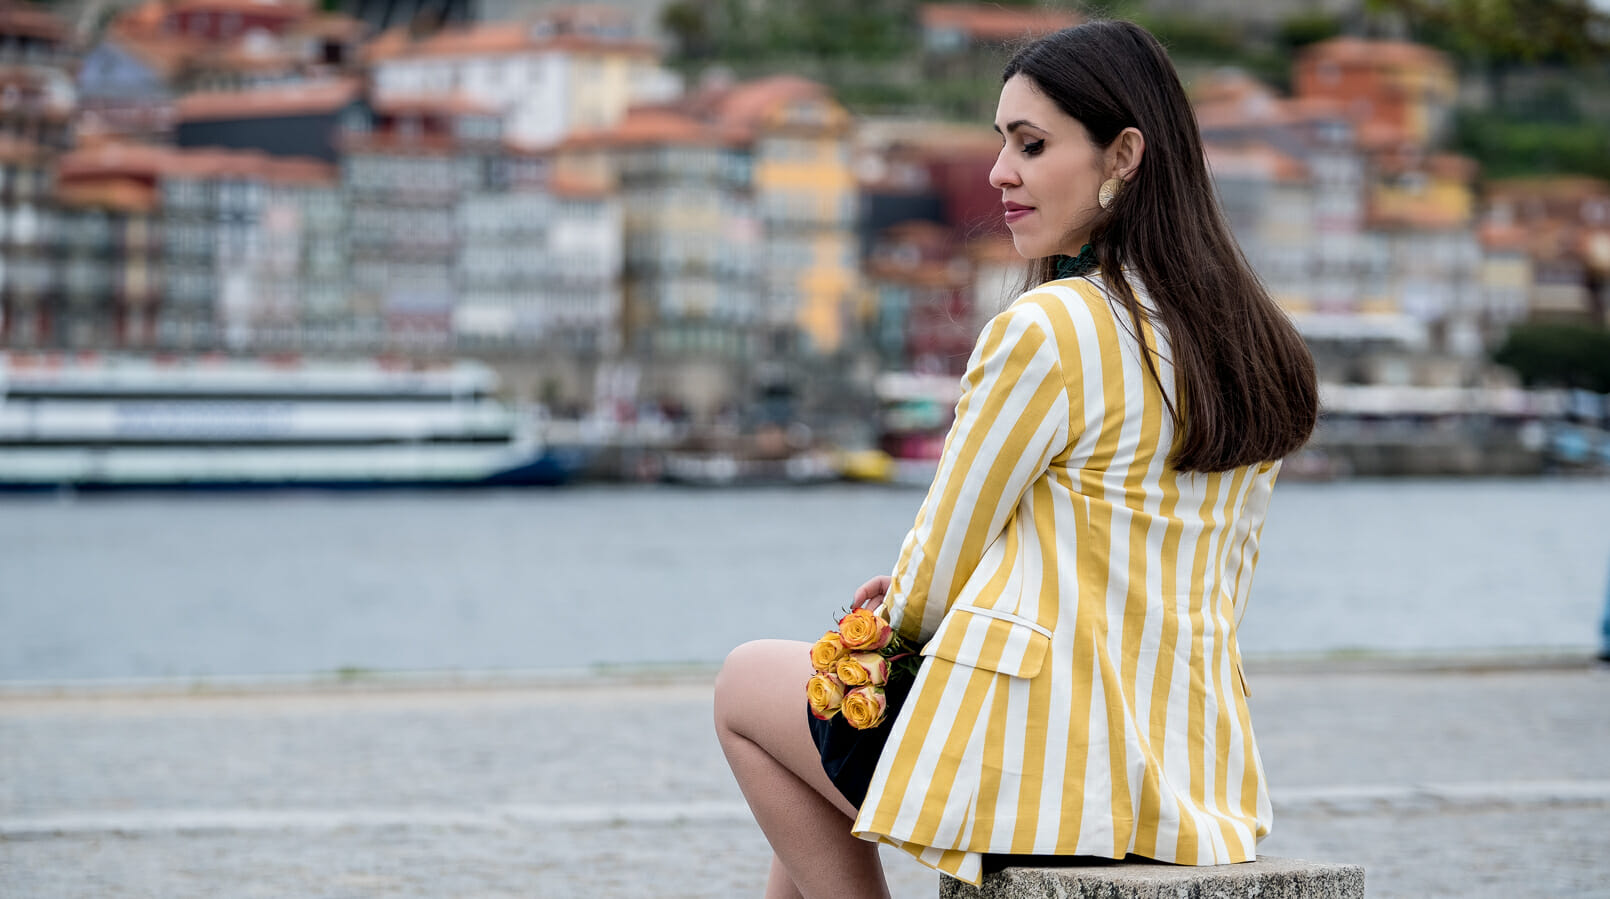 Le Fashionaire You need to know this street art rabbit yellow white vertical stripes bershka blazer gold bold green tassels zara earrings yellow roses 9219F EN